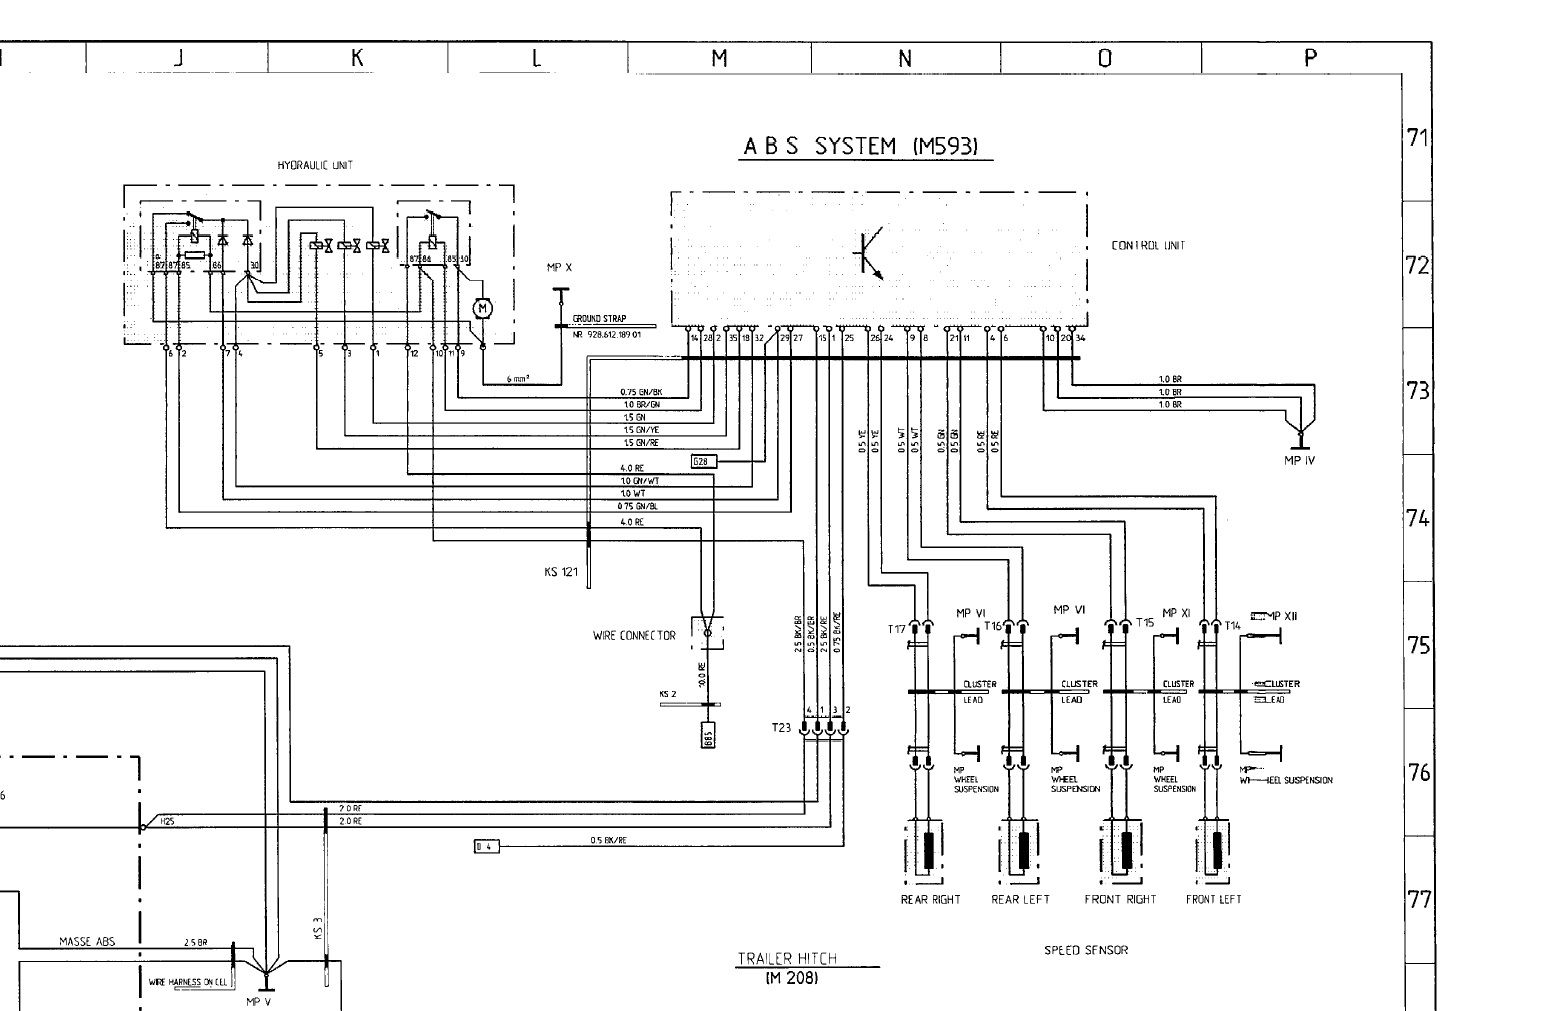 Mercury Milan 2010 Fuse Box Wiring Library Cayenne Porsche Diagram Schematic Diagrams 2006 Hyundai Sonata Engine